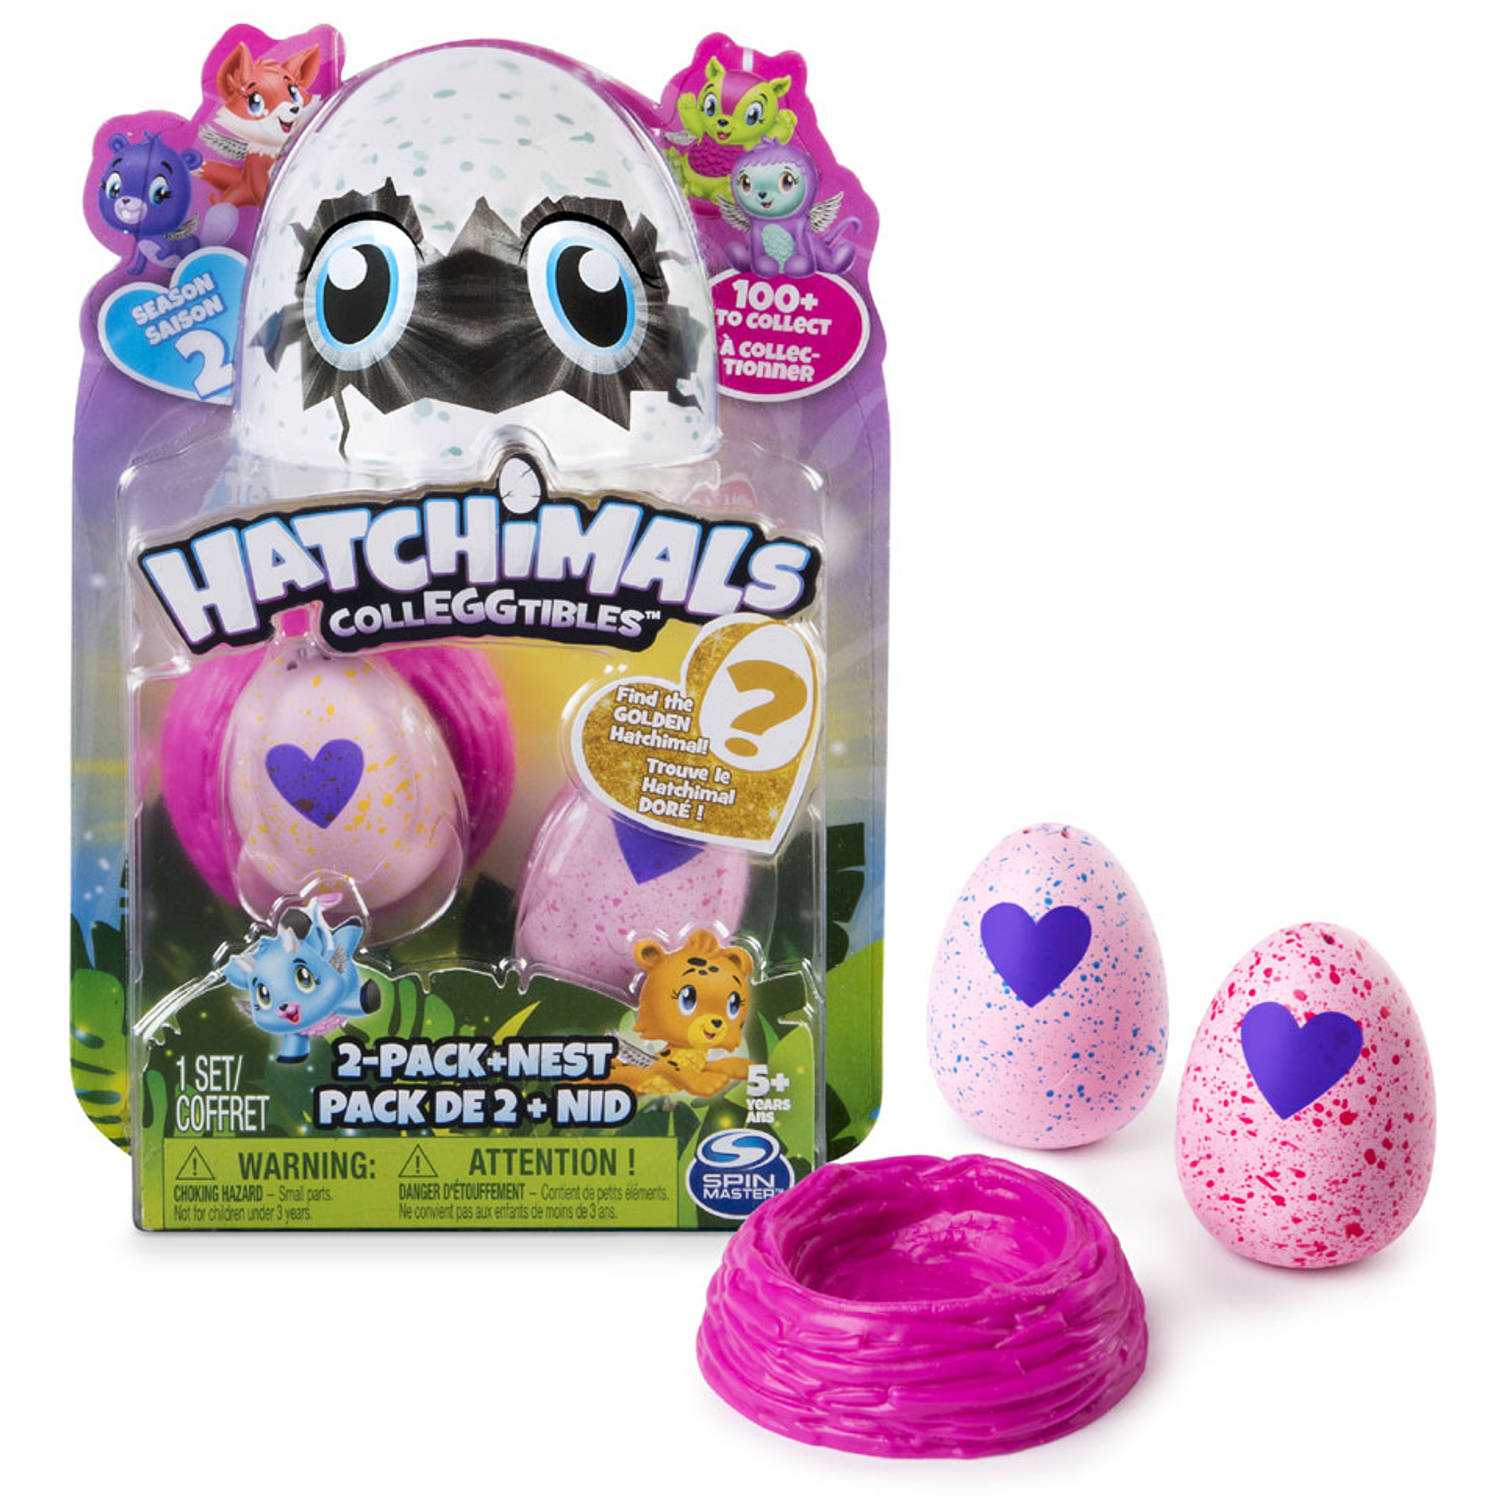 hatchimals colleggtibles season 2 2 pack met nest